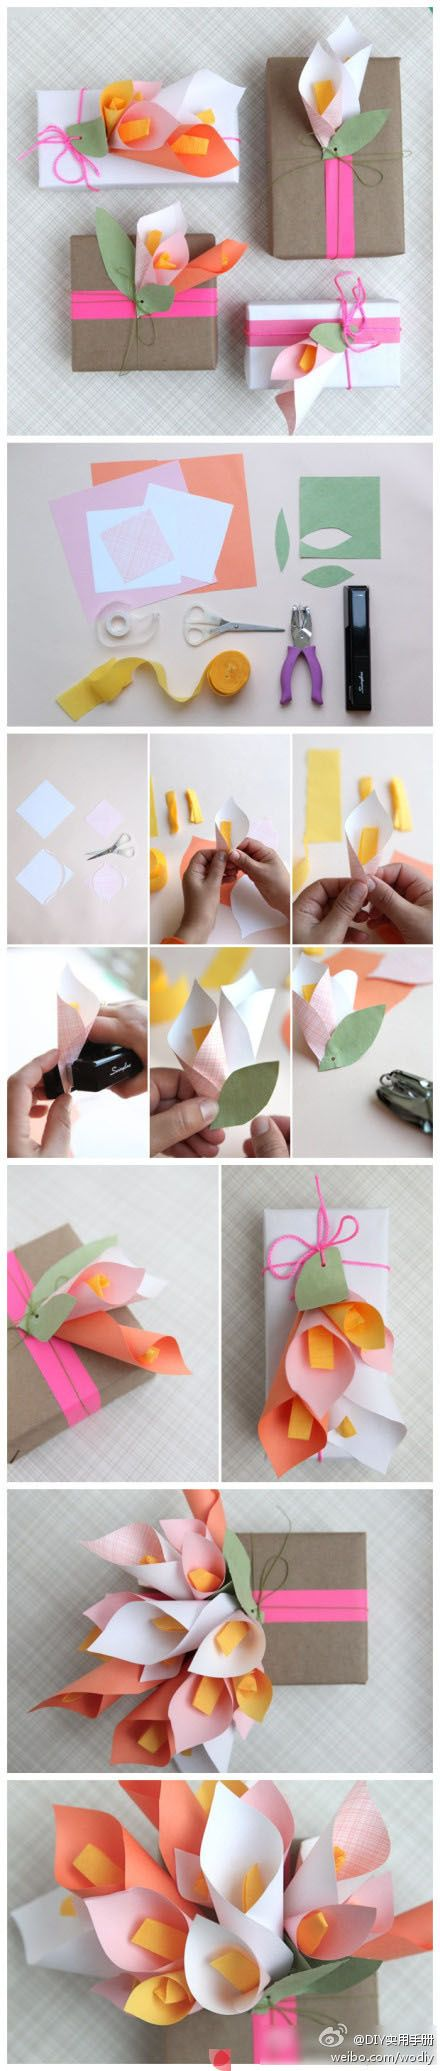 Great way to decorate spring time presents or just to brighten someone's day!